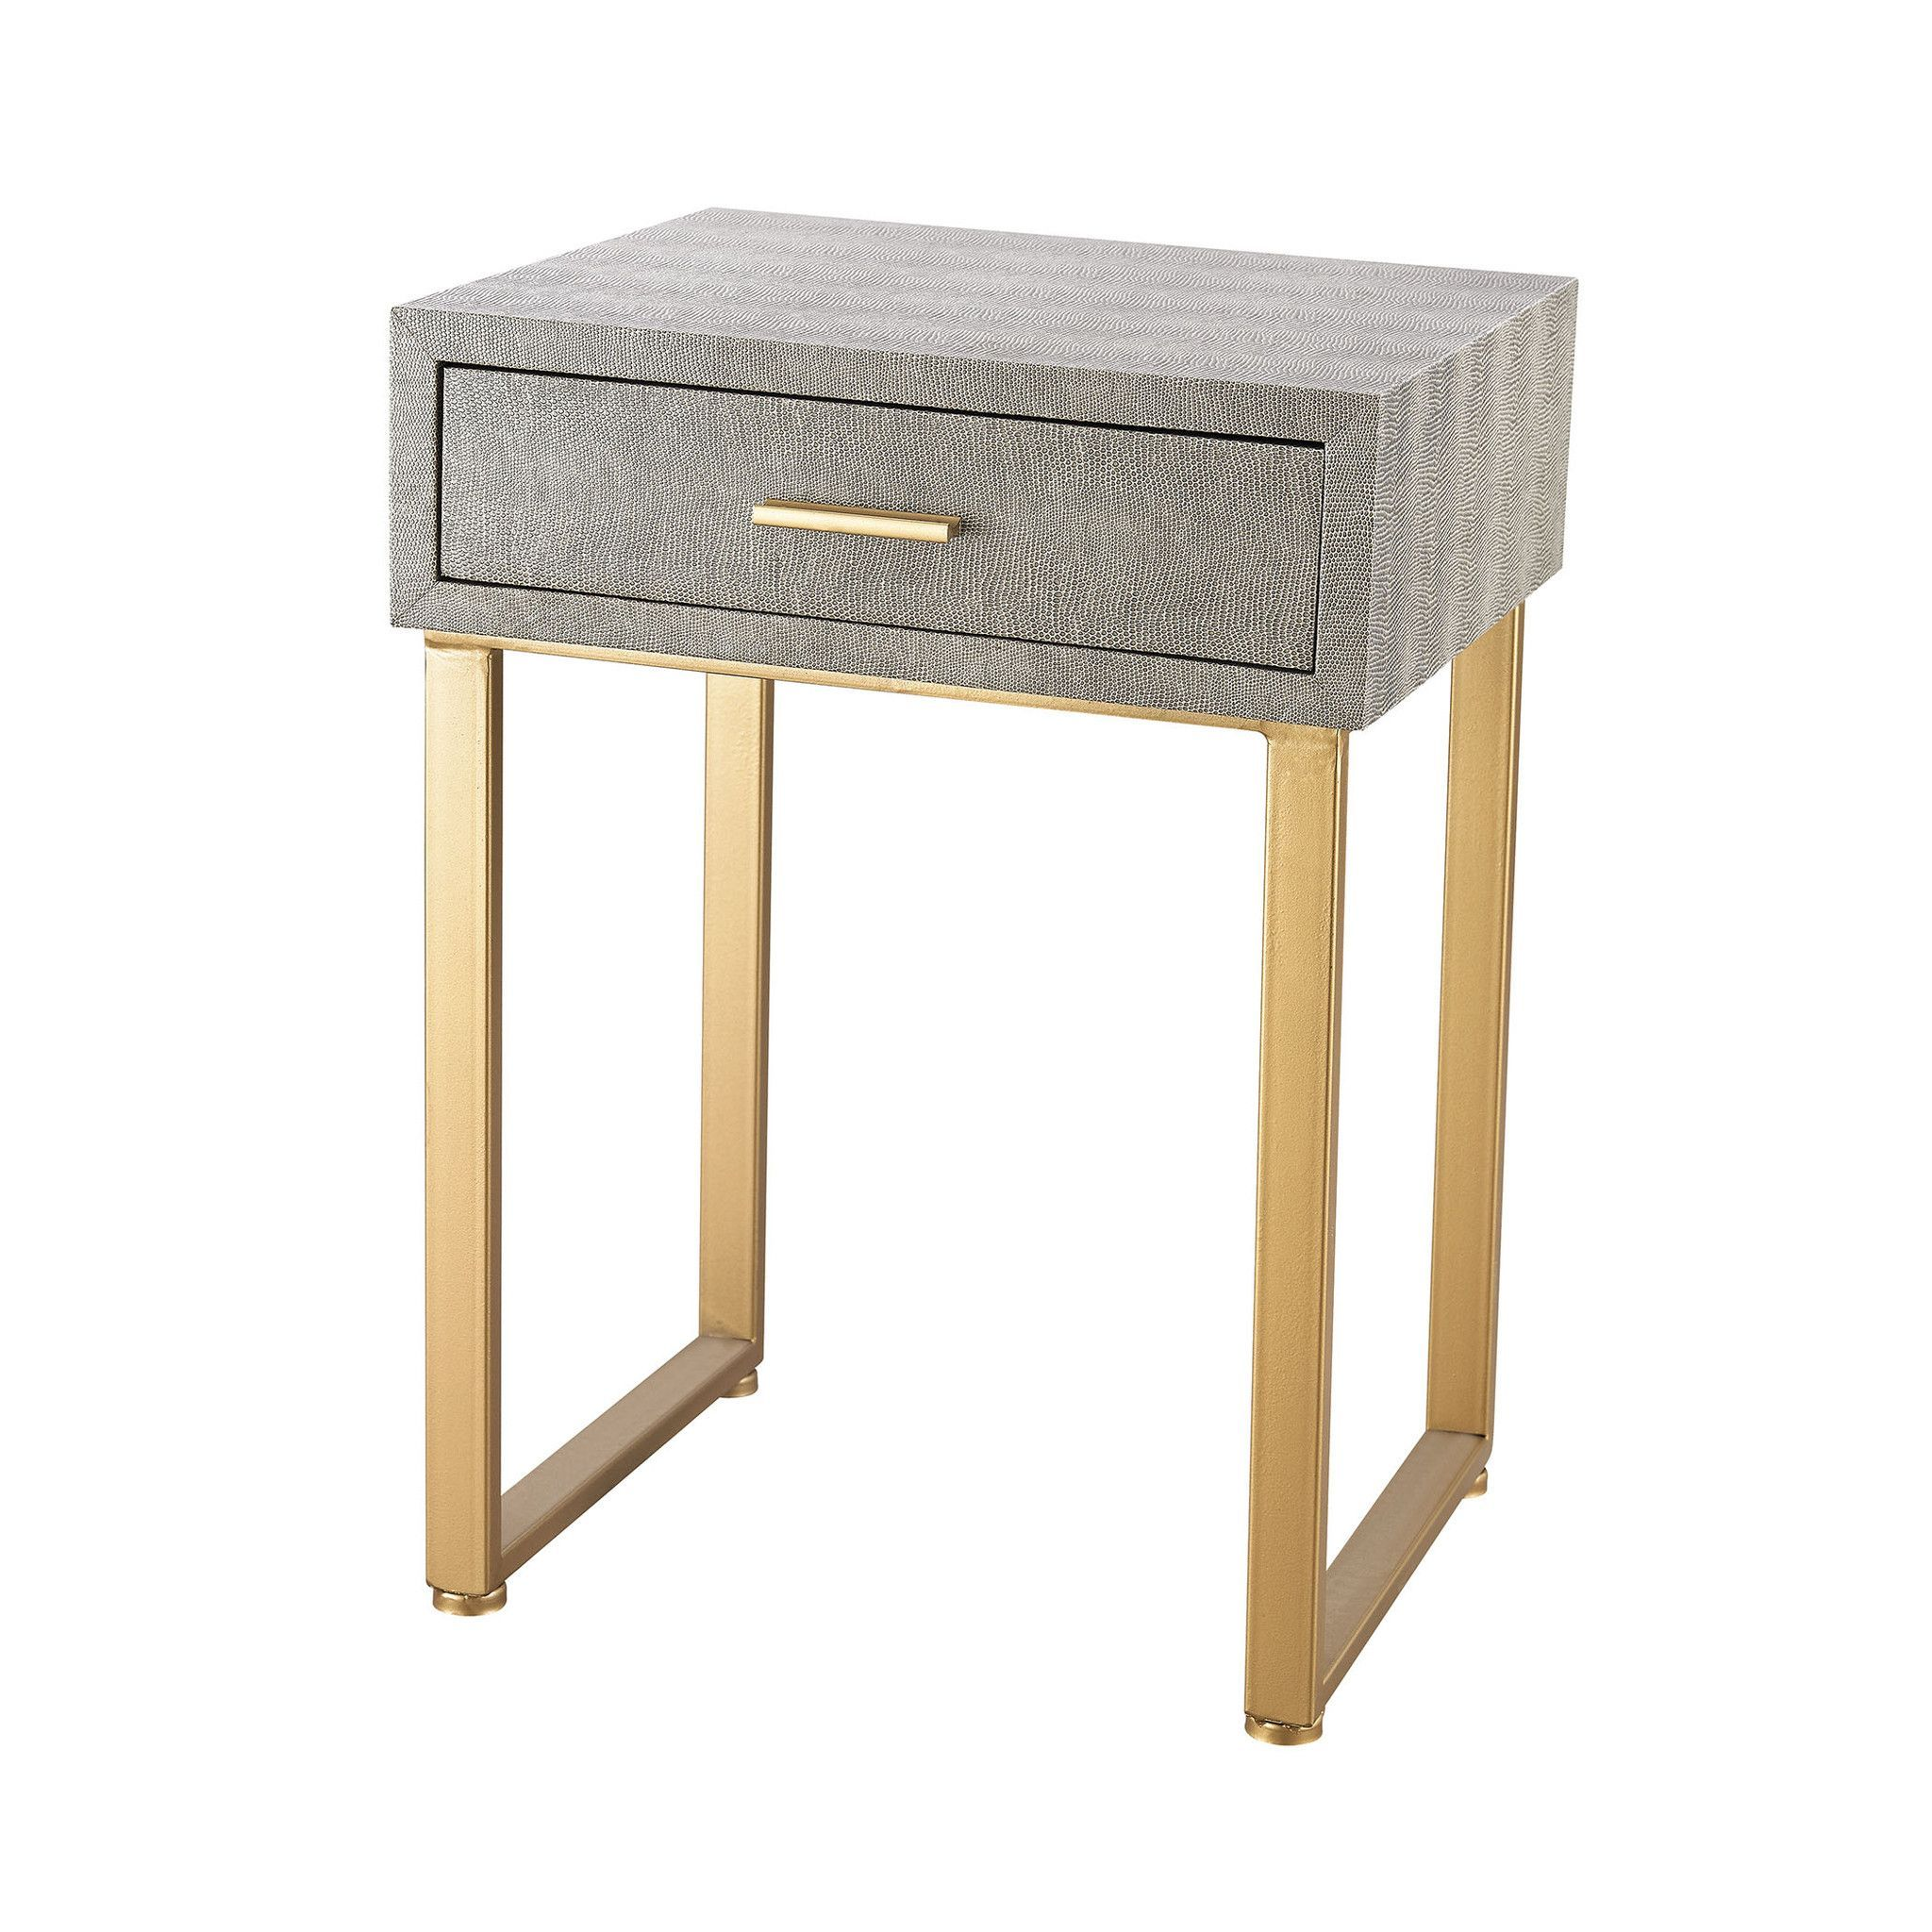 sterling beaufort point wood metal accent side table gold gray with drawer dining cover oval shape old small corner for hallway target white bedside industrial chairs real marble